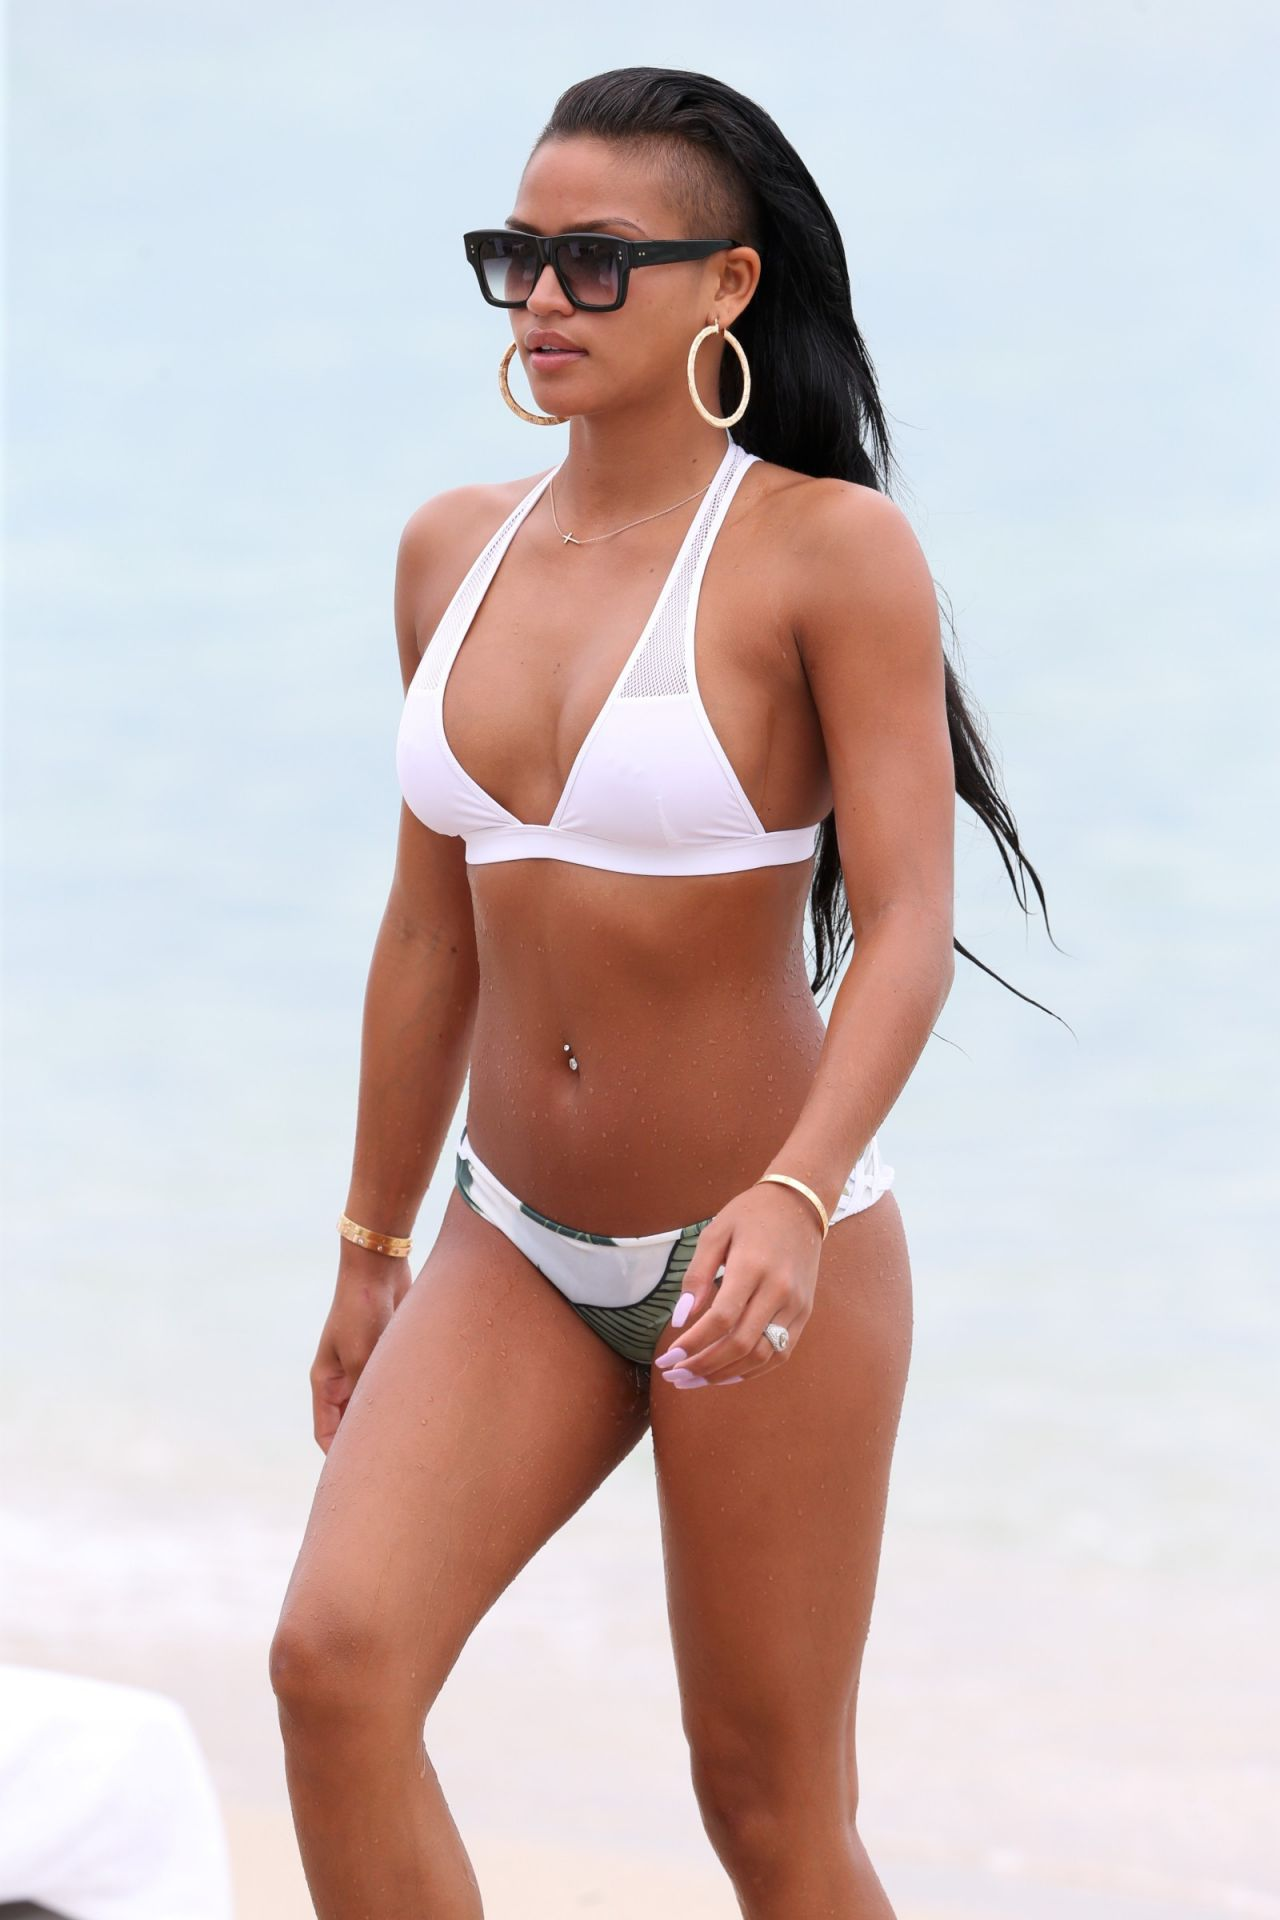 cassie ventura white bikini miami long hair shaved undercut